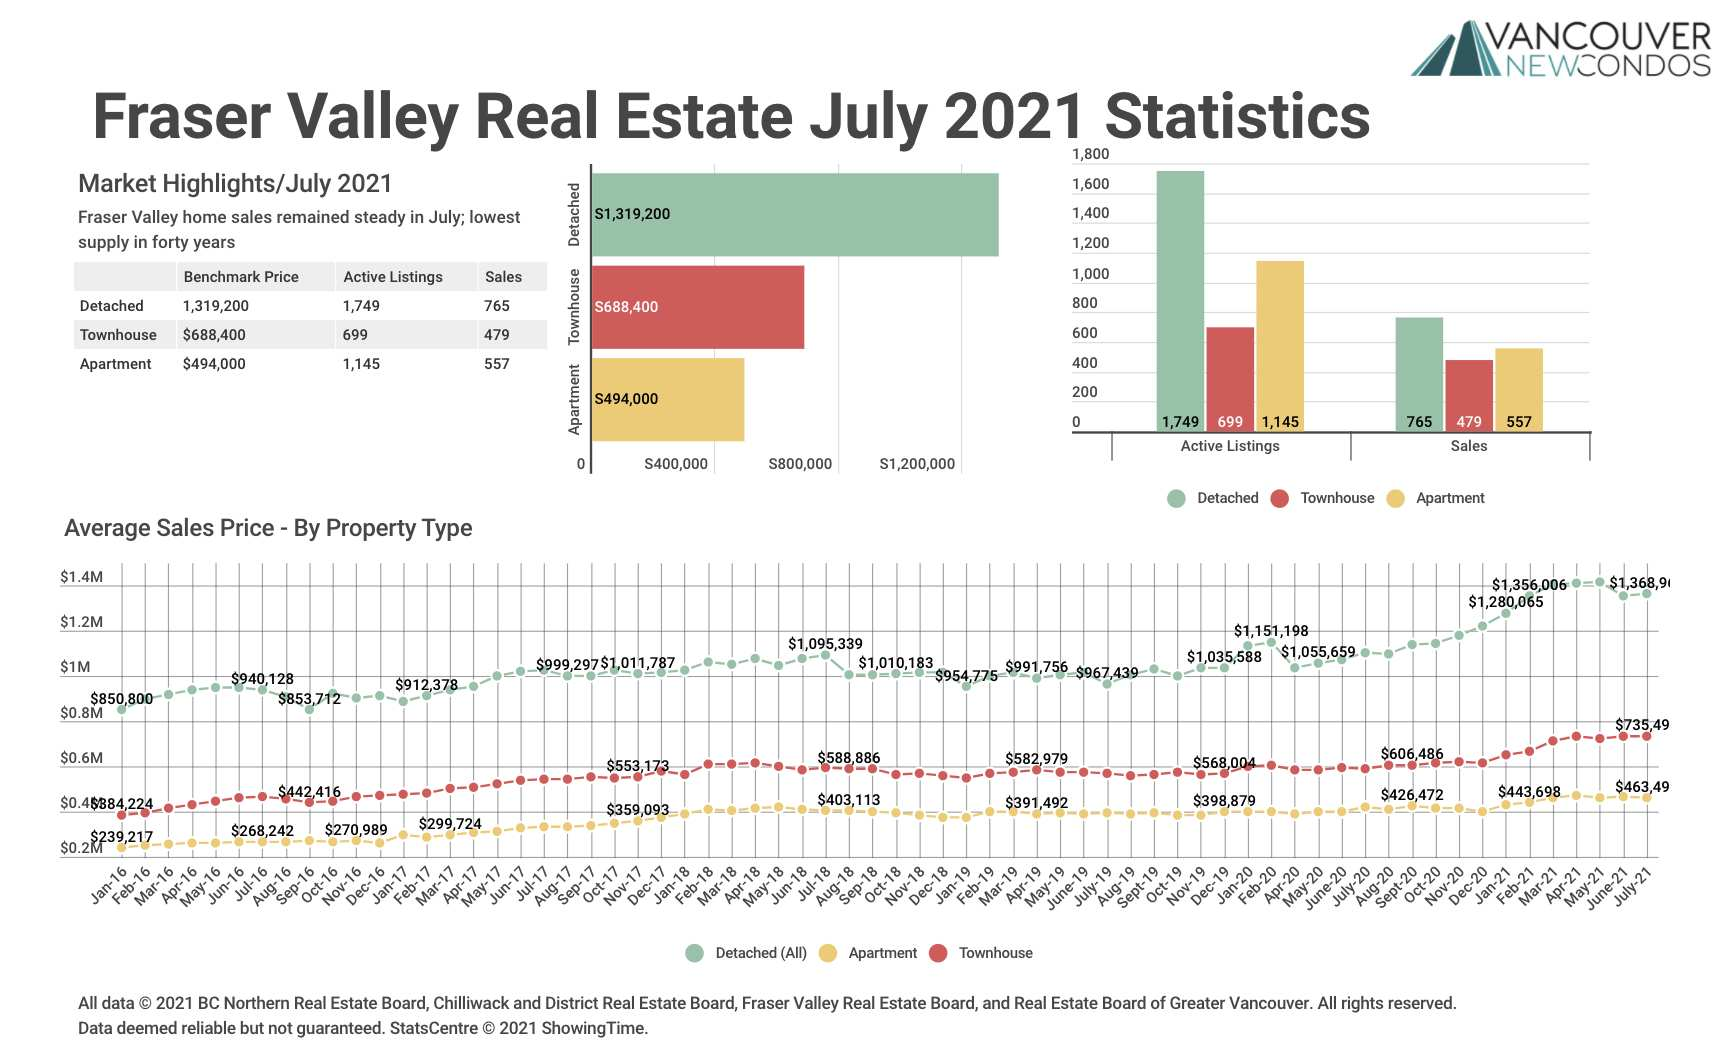 FVREB July 21 Stats Graph